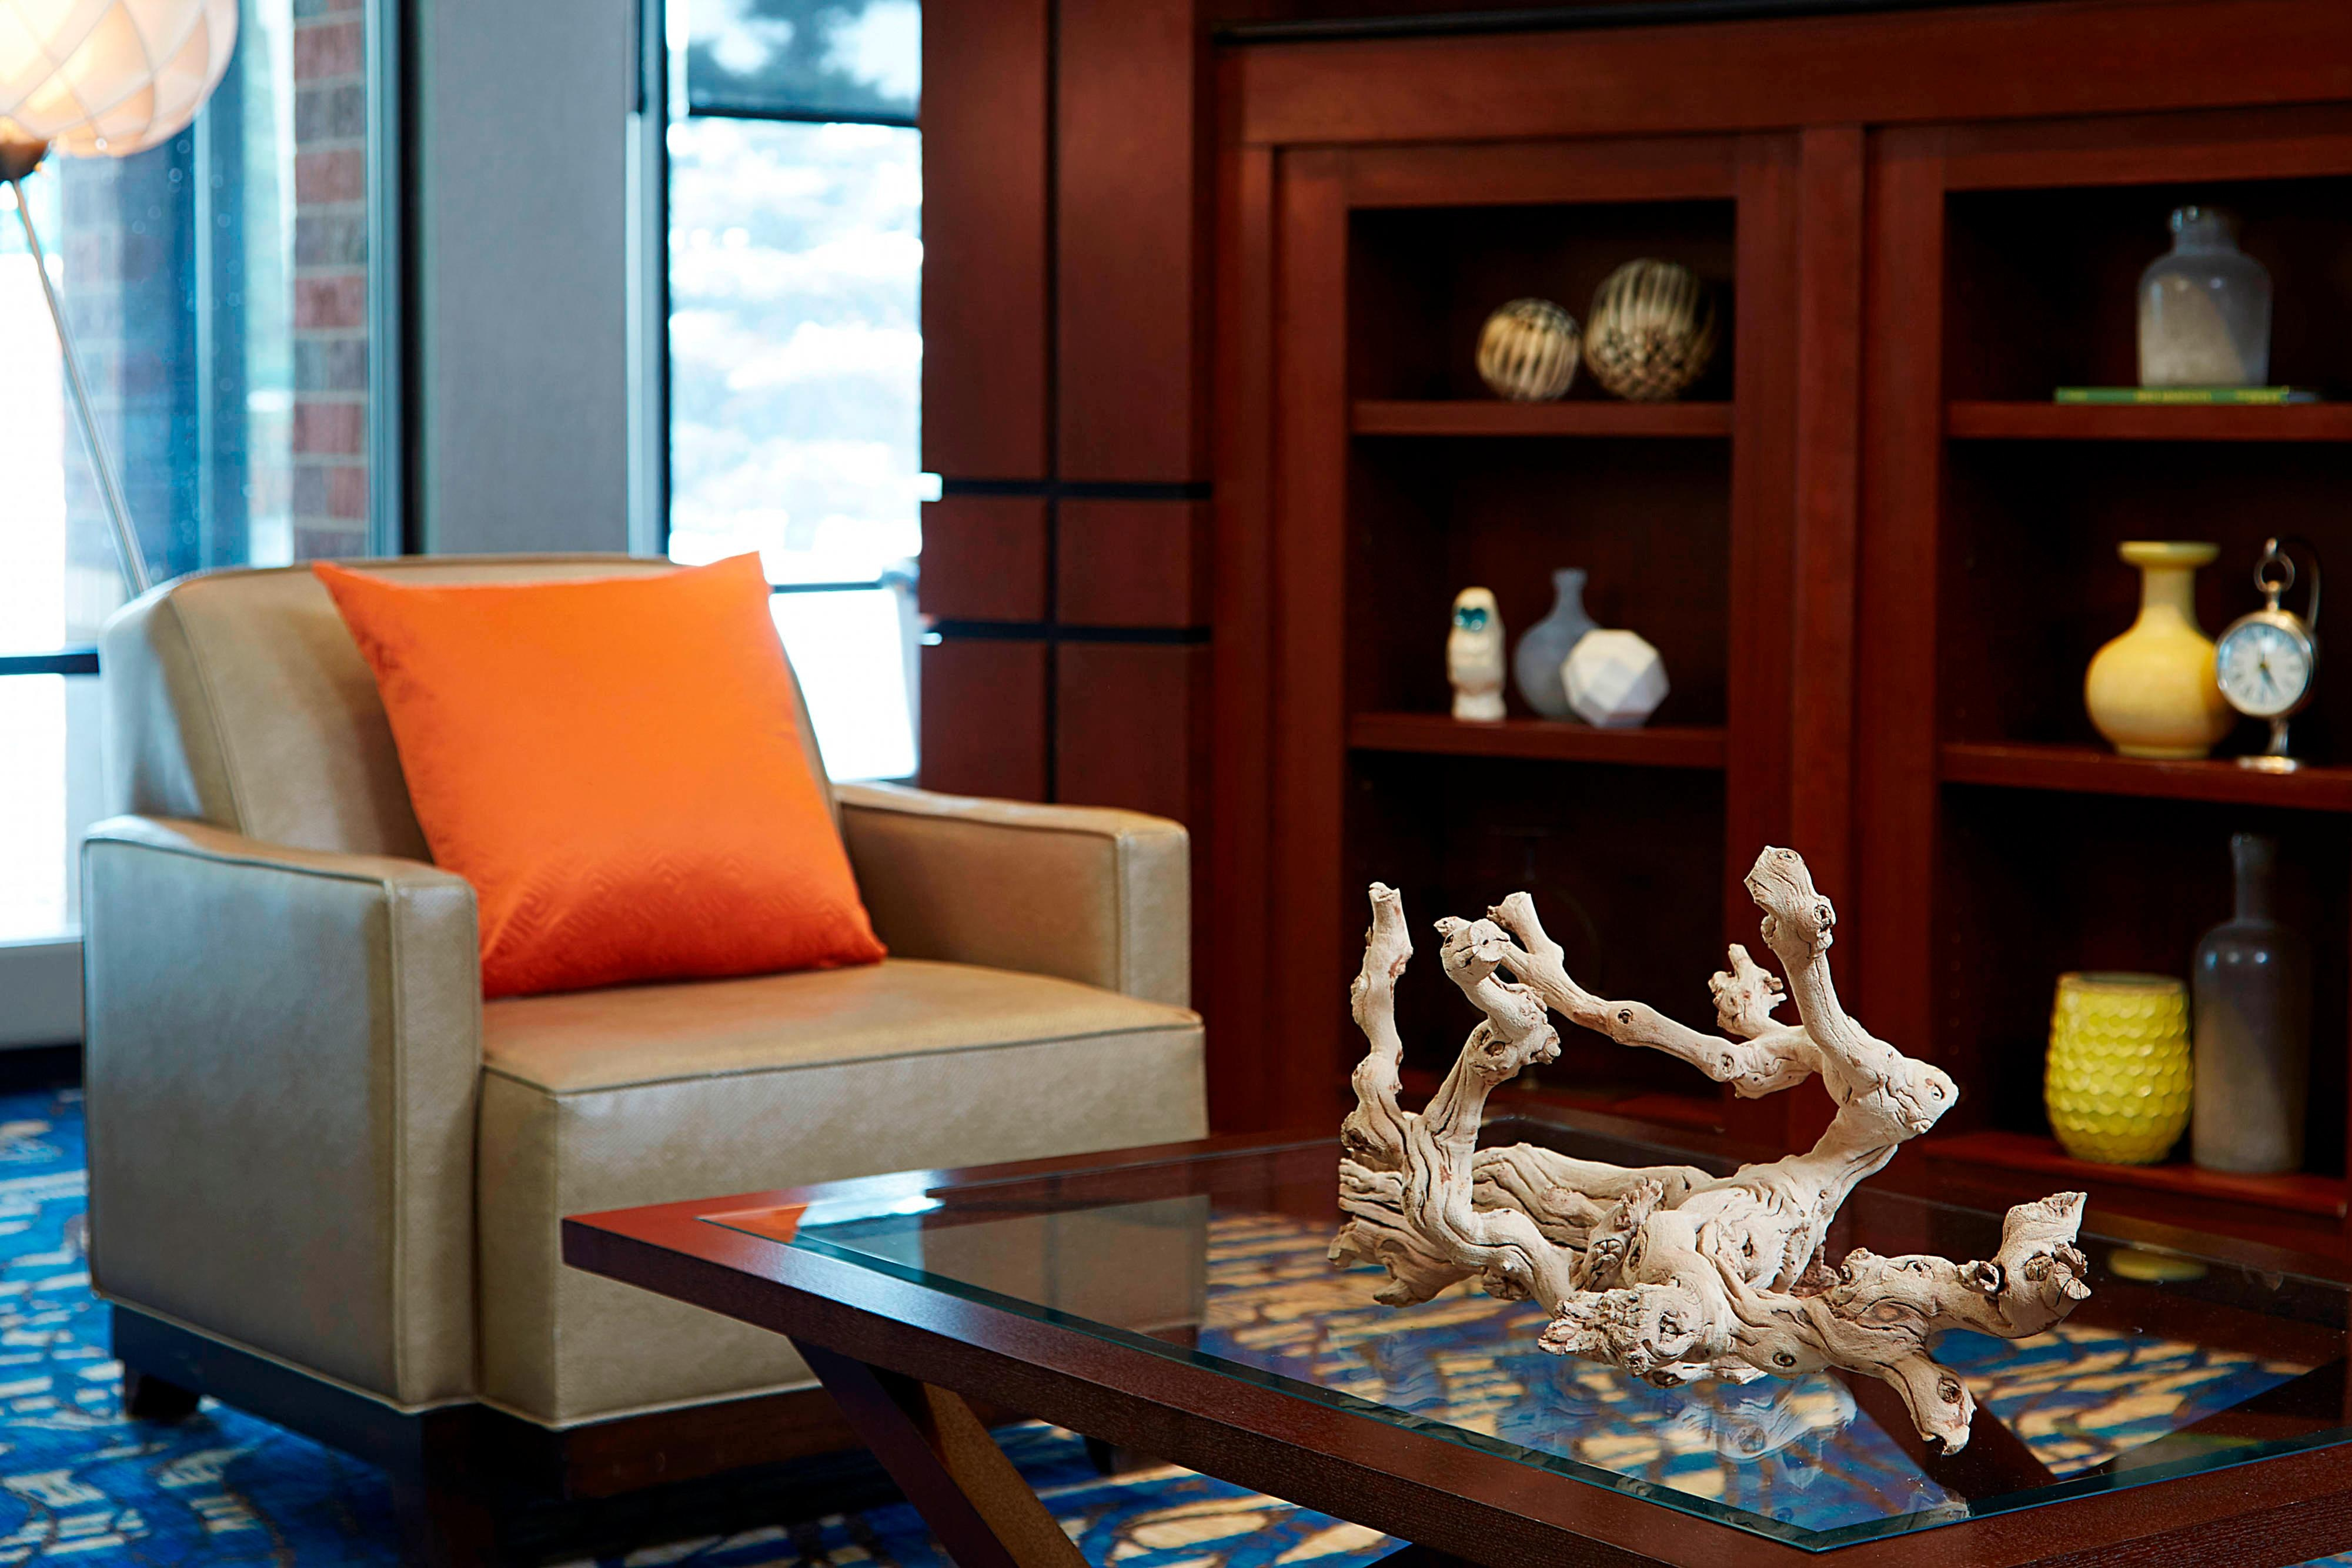 Lobby - Sitting Area Detail